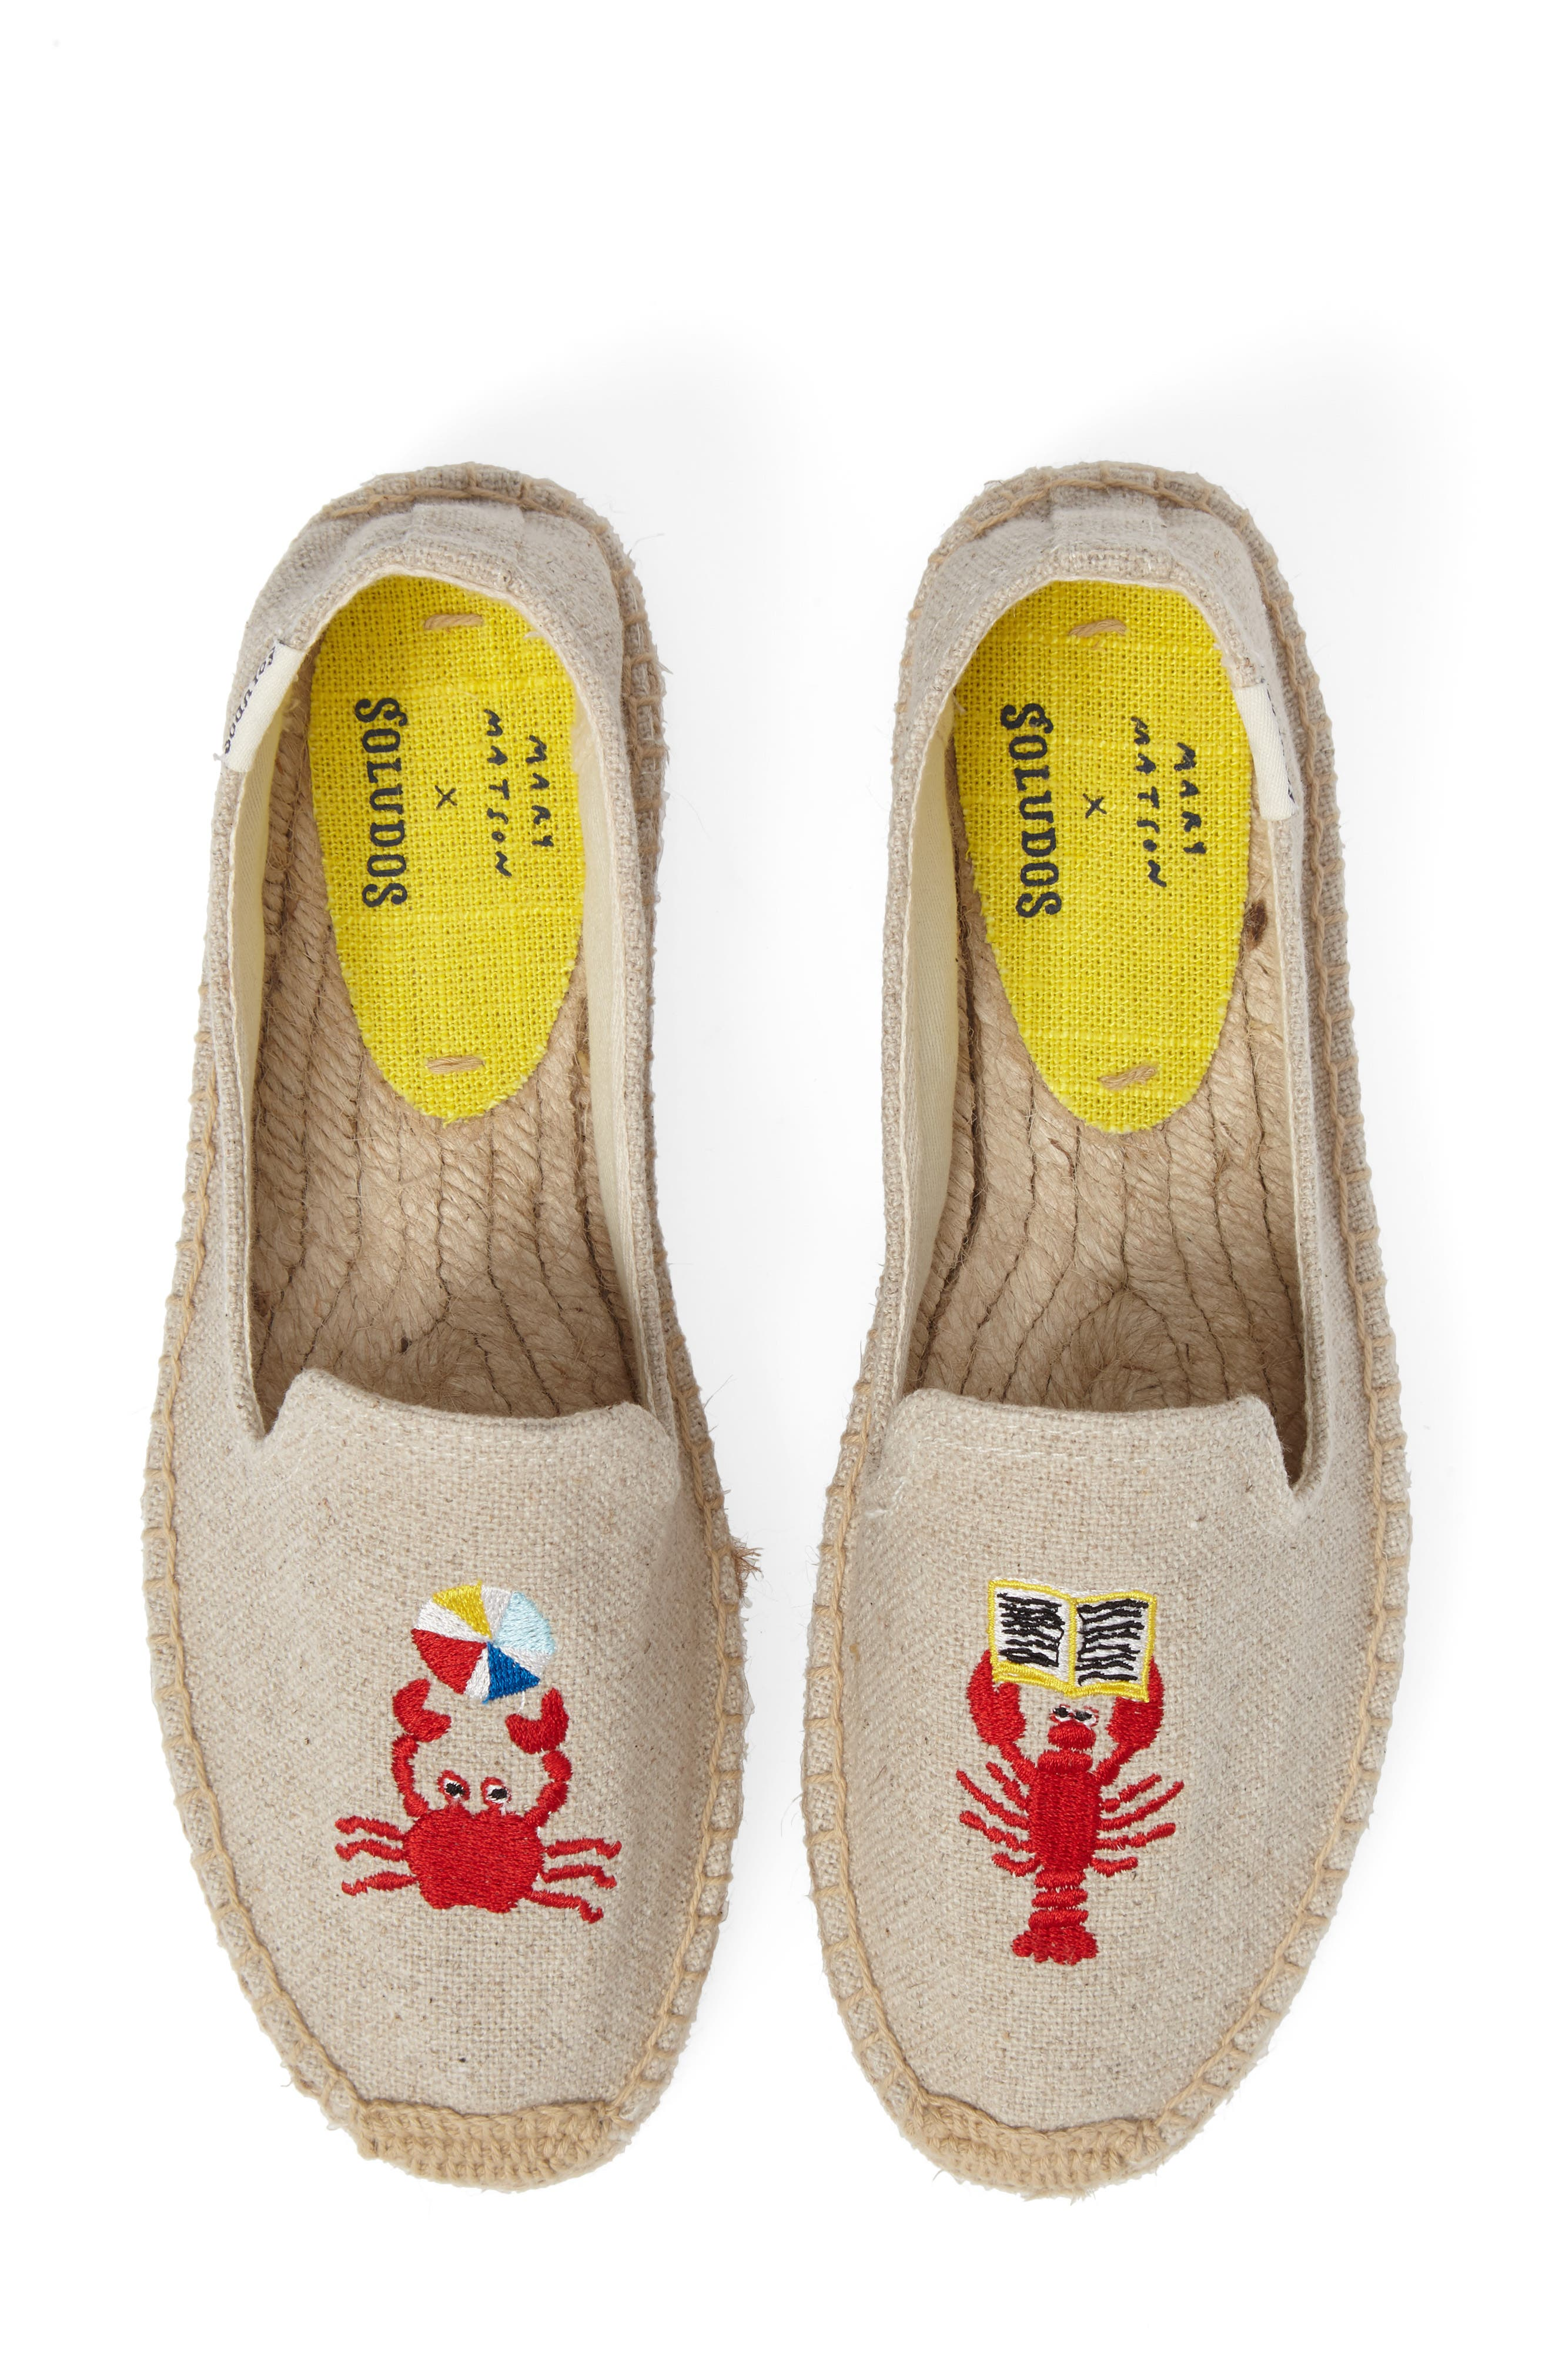 Soludos x Mary Matson Lobster & Crab Platform Espadrille (Women)